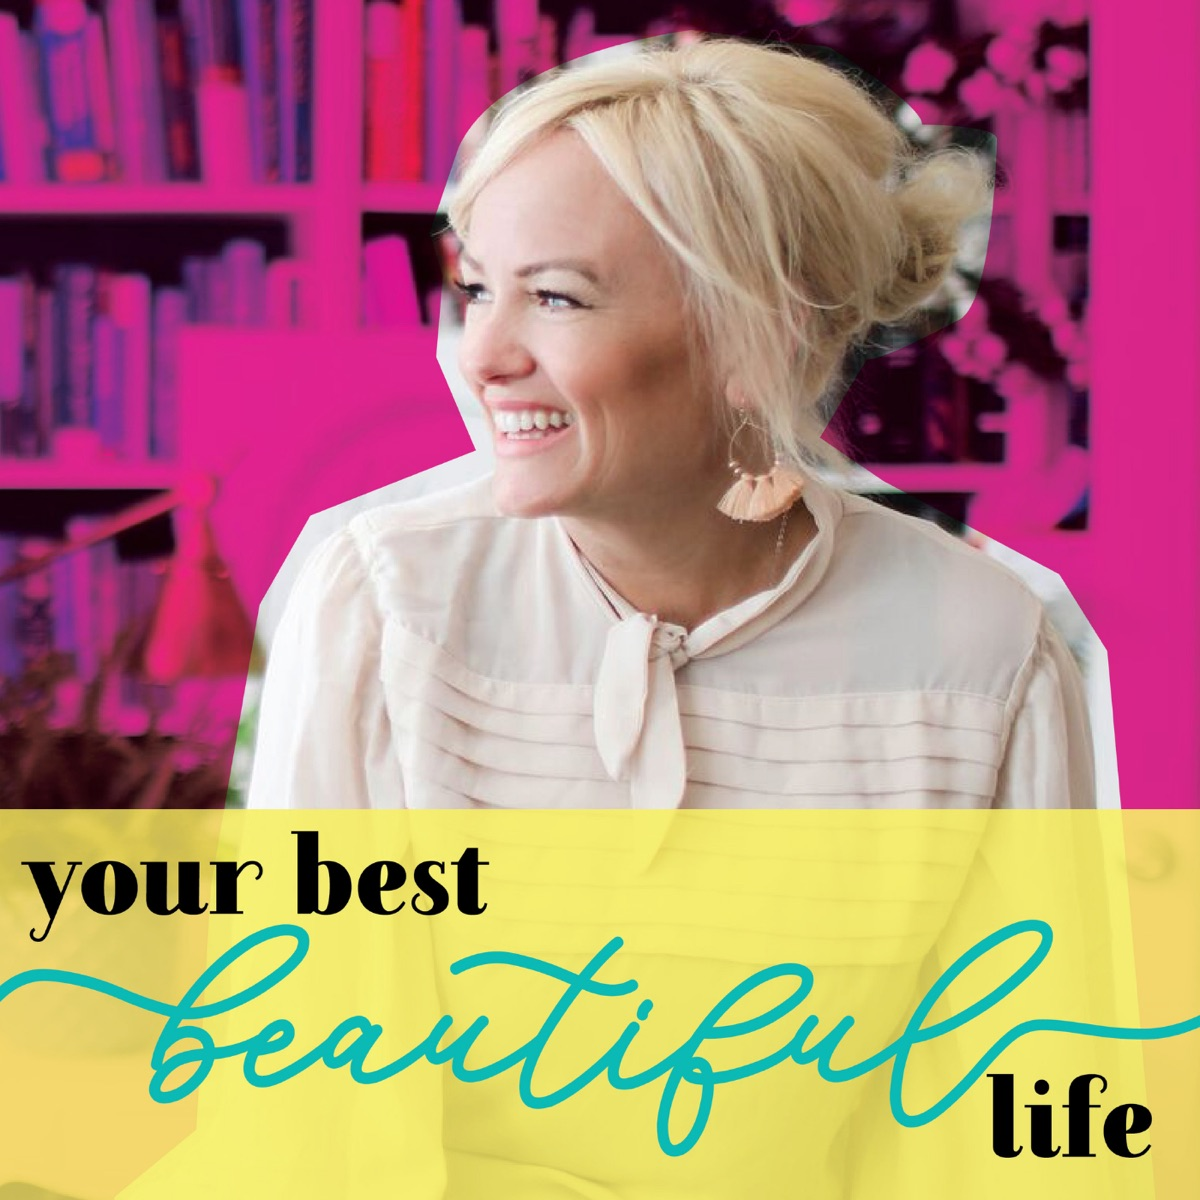 Your Best Beautiful Life